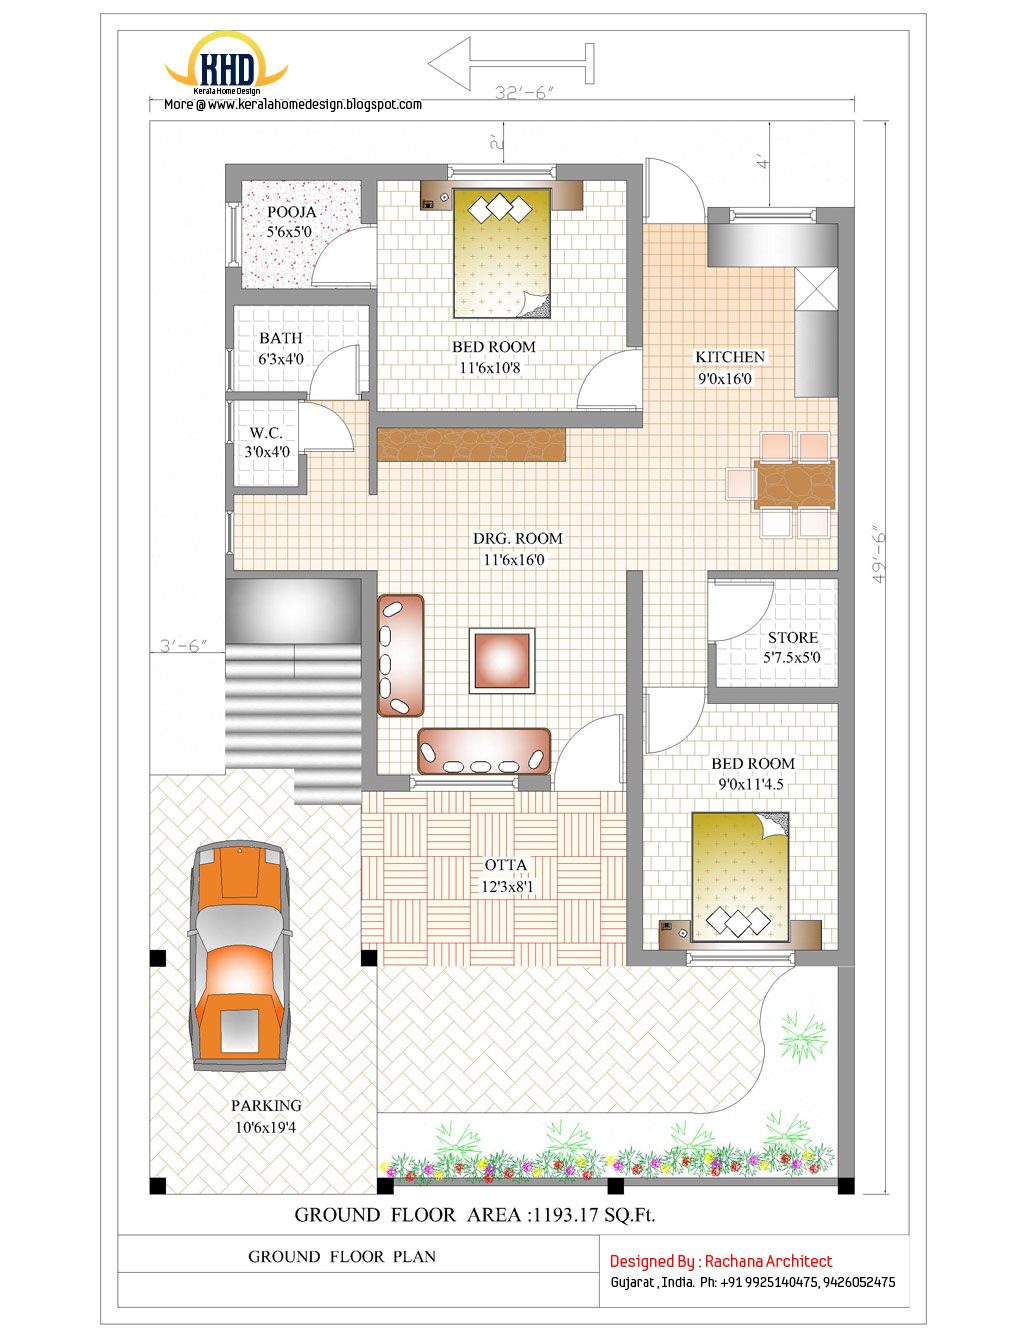 Home Design Plans 3 bedroom home design plans unique on bedroom with 25 more 3d floor plans 4 New House Plans In India New House Floor Plans In India